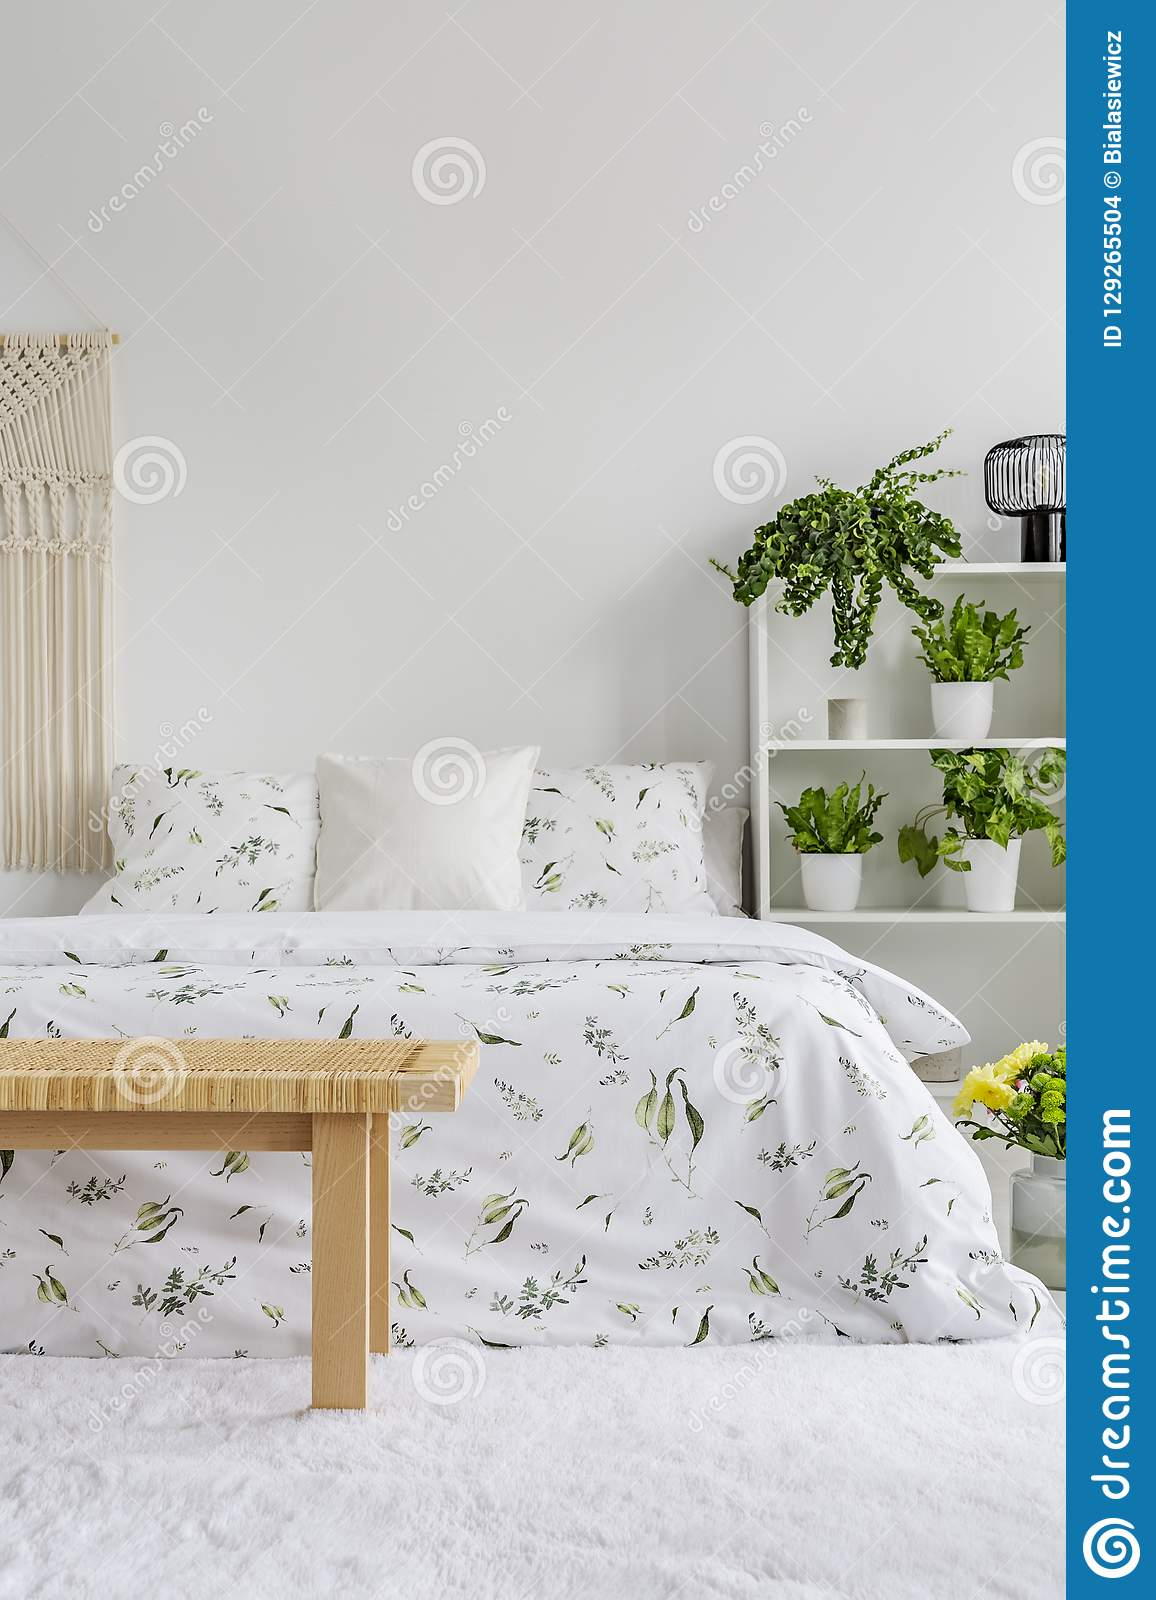 White Bedroom Interior With Fresh Plants On Rack, Floral ...